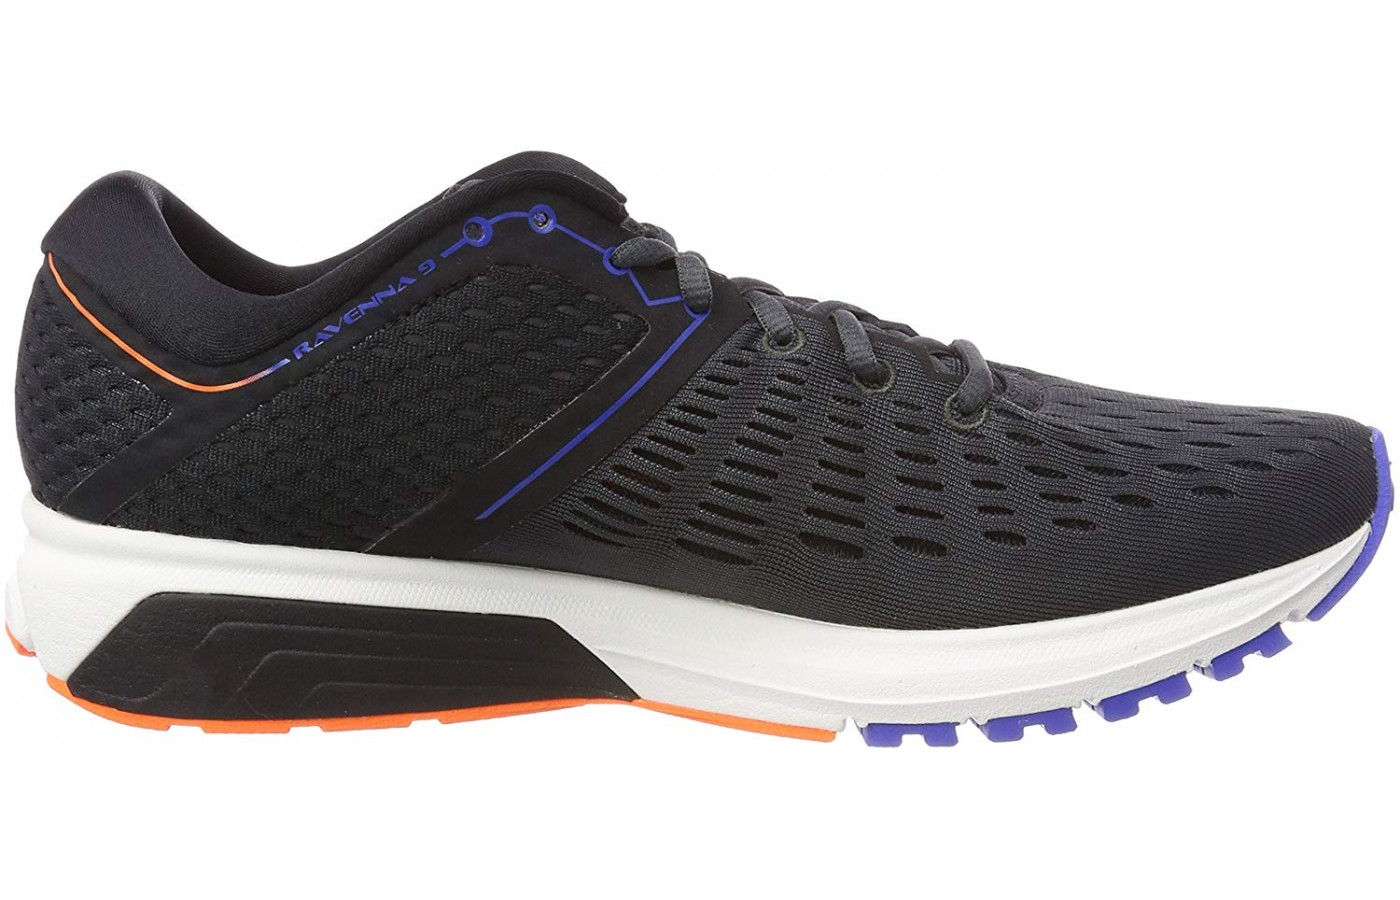 Brooks Ravenna 9 Outsole